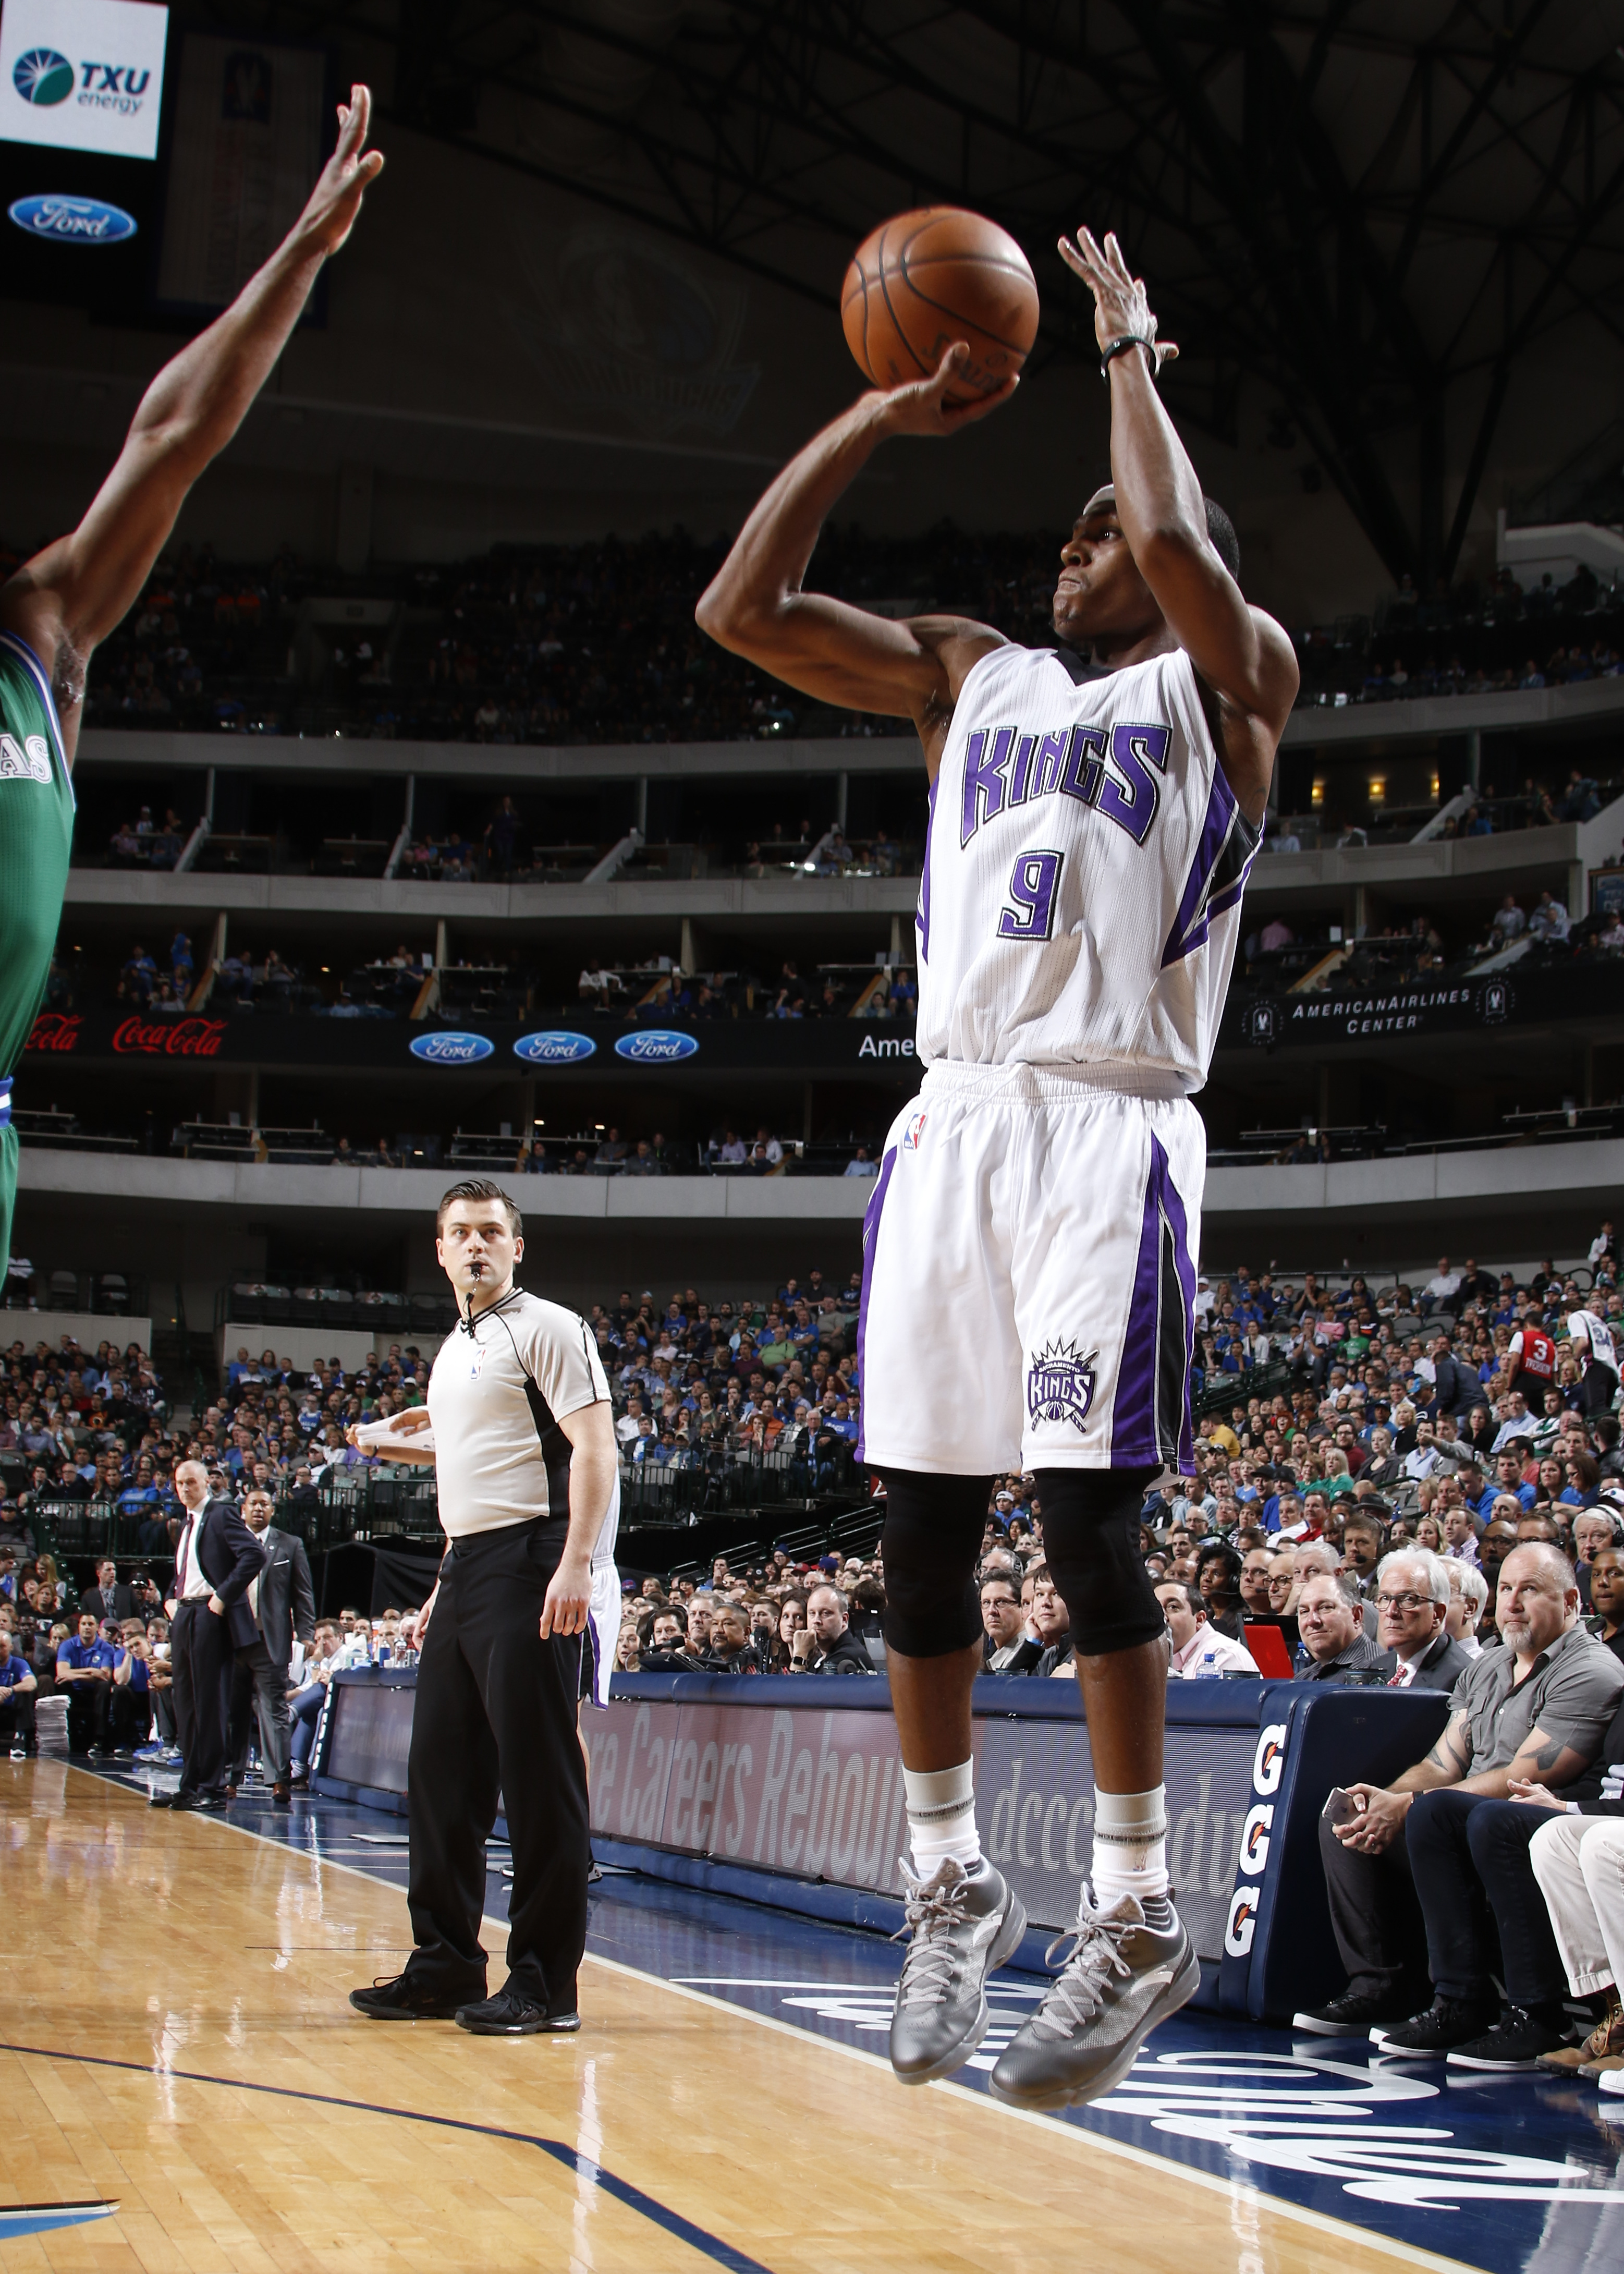 DALLAS, TX - MARCH 3: Rajon Rondo #9 of the Sacramento Kings shoots a jumper against the Dallas Mavericks on March 3, 2016 at the American Airlines Center in Dallas, Texas. (Photo by Danny Bollinger/NBAE via Getty Images)